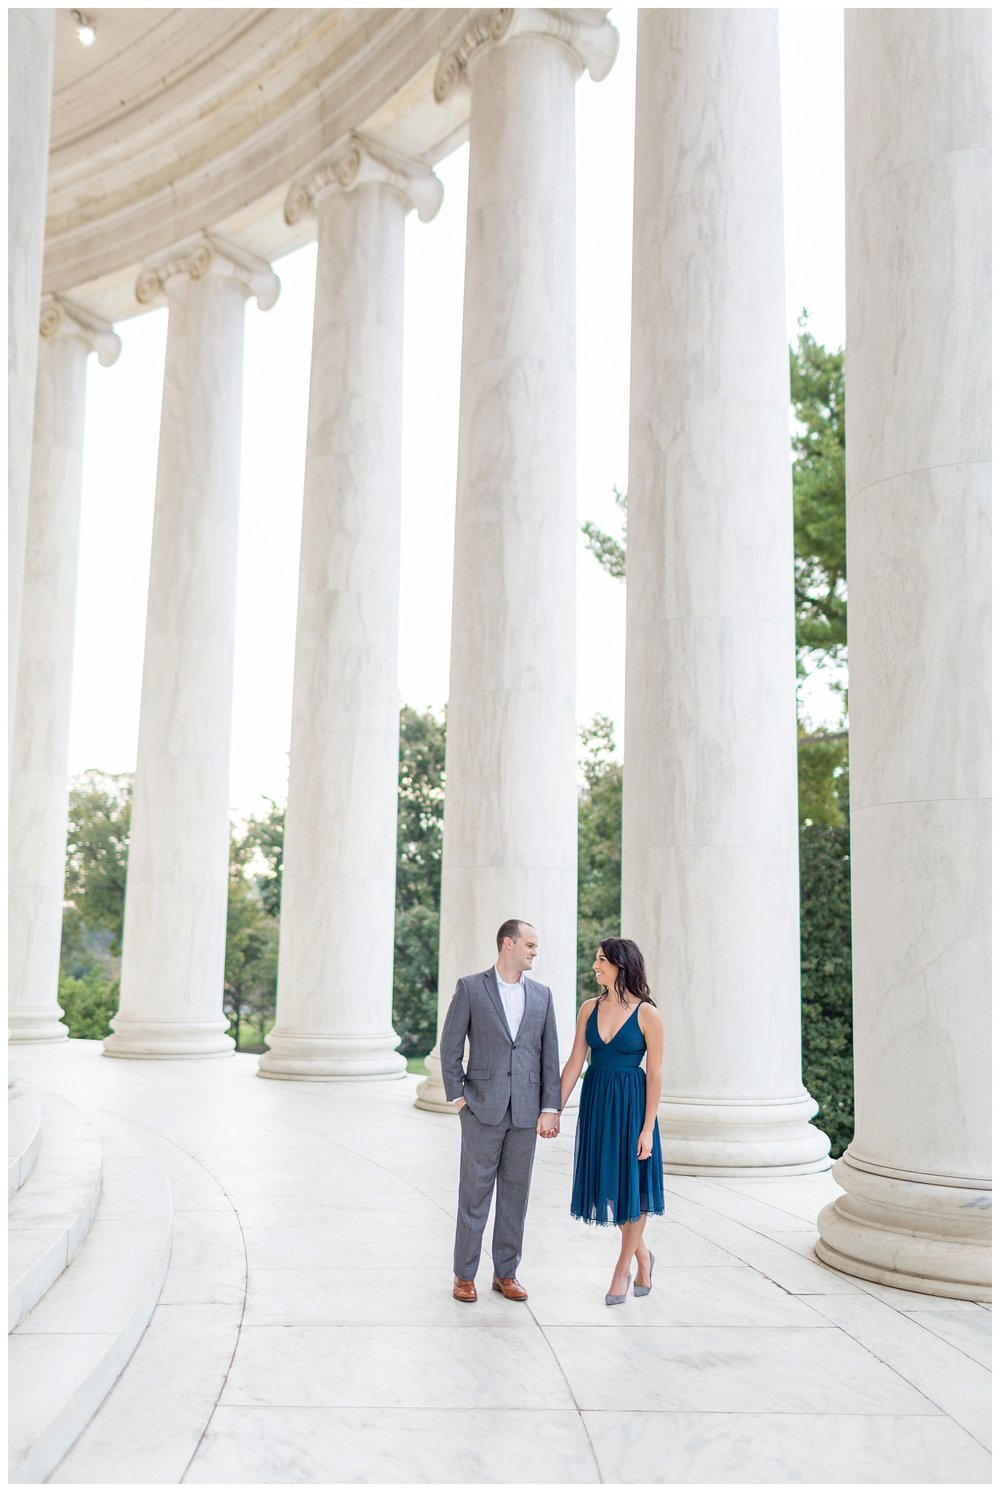 Washington DC Engagement Photos Kir Tuben_0001.jpg